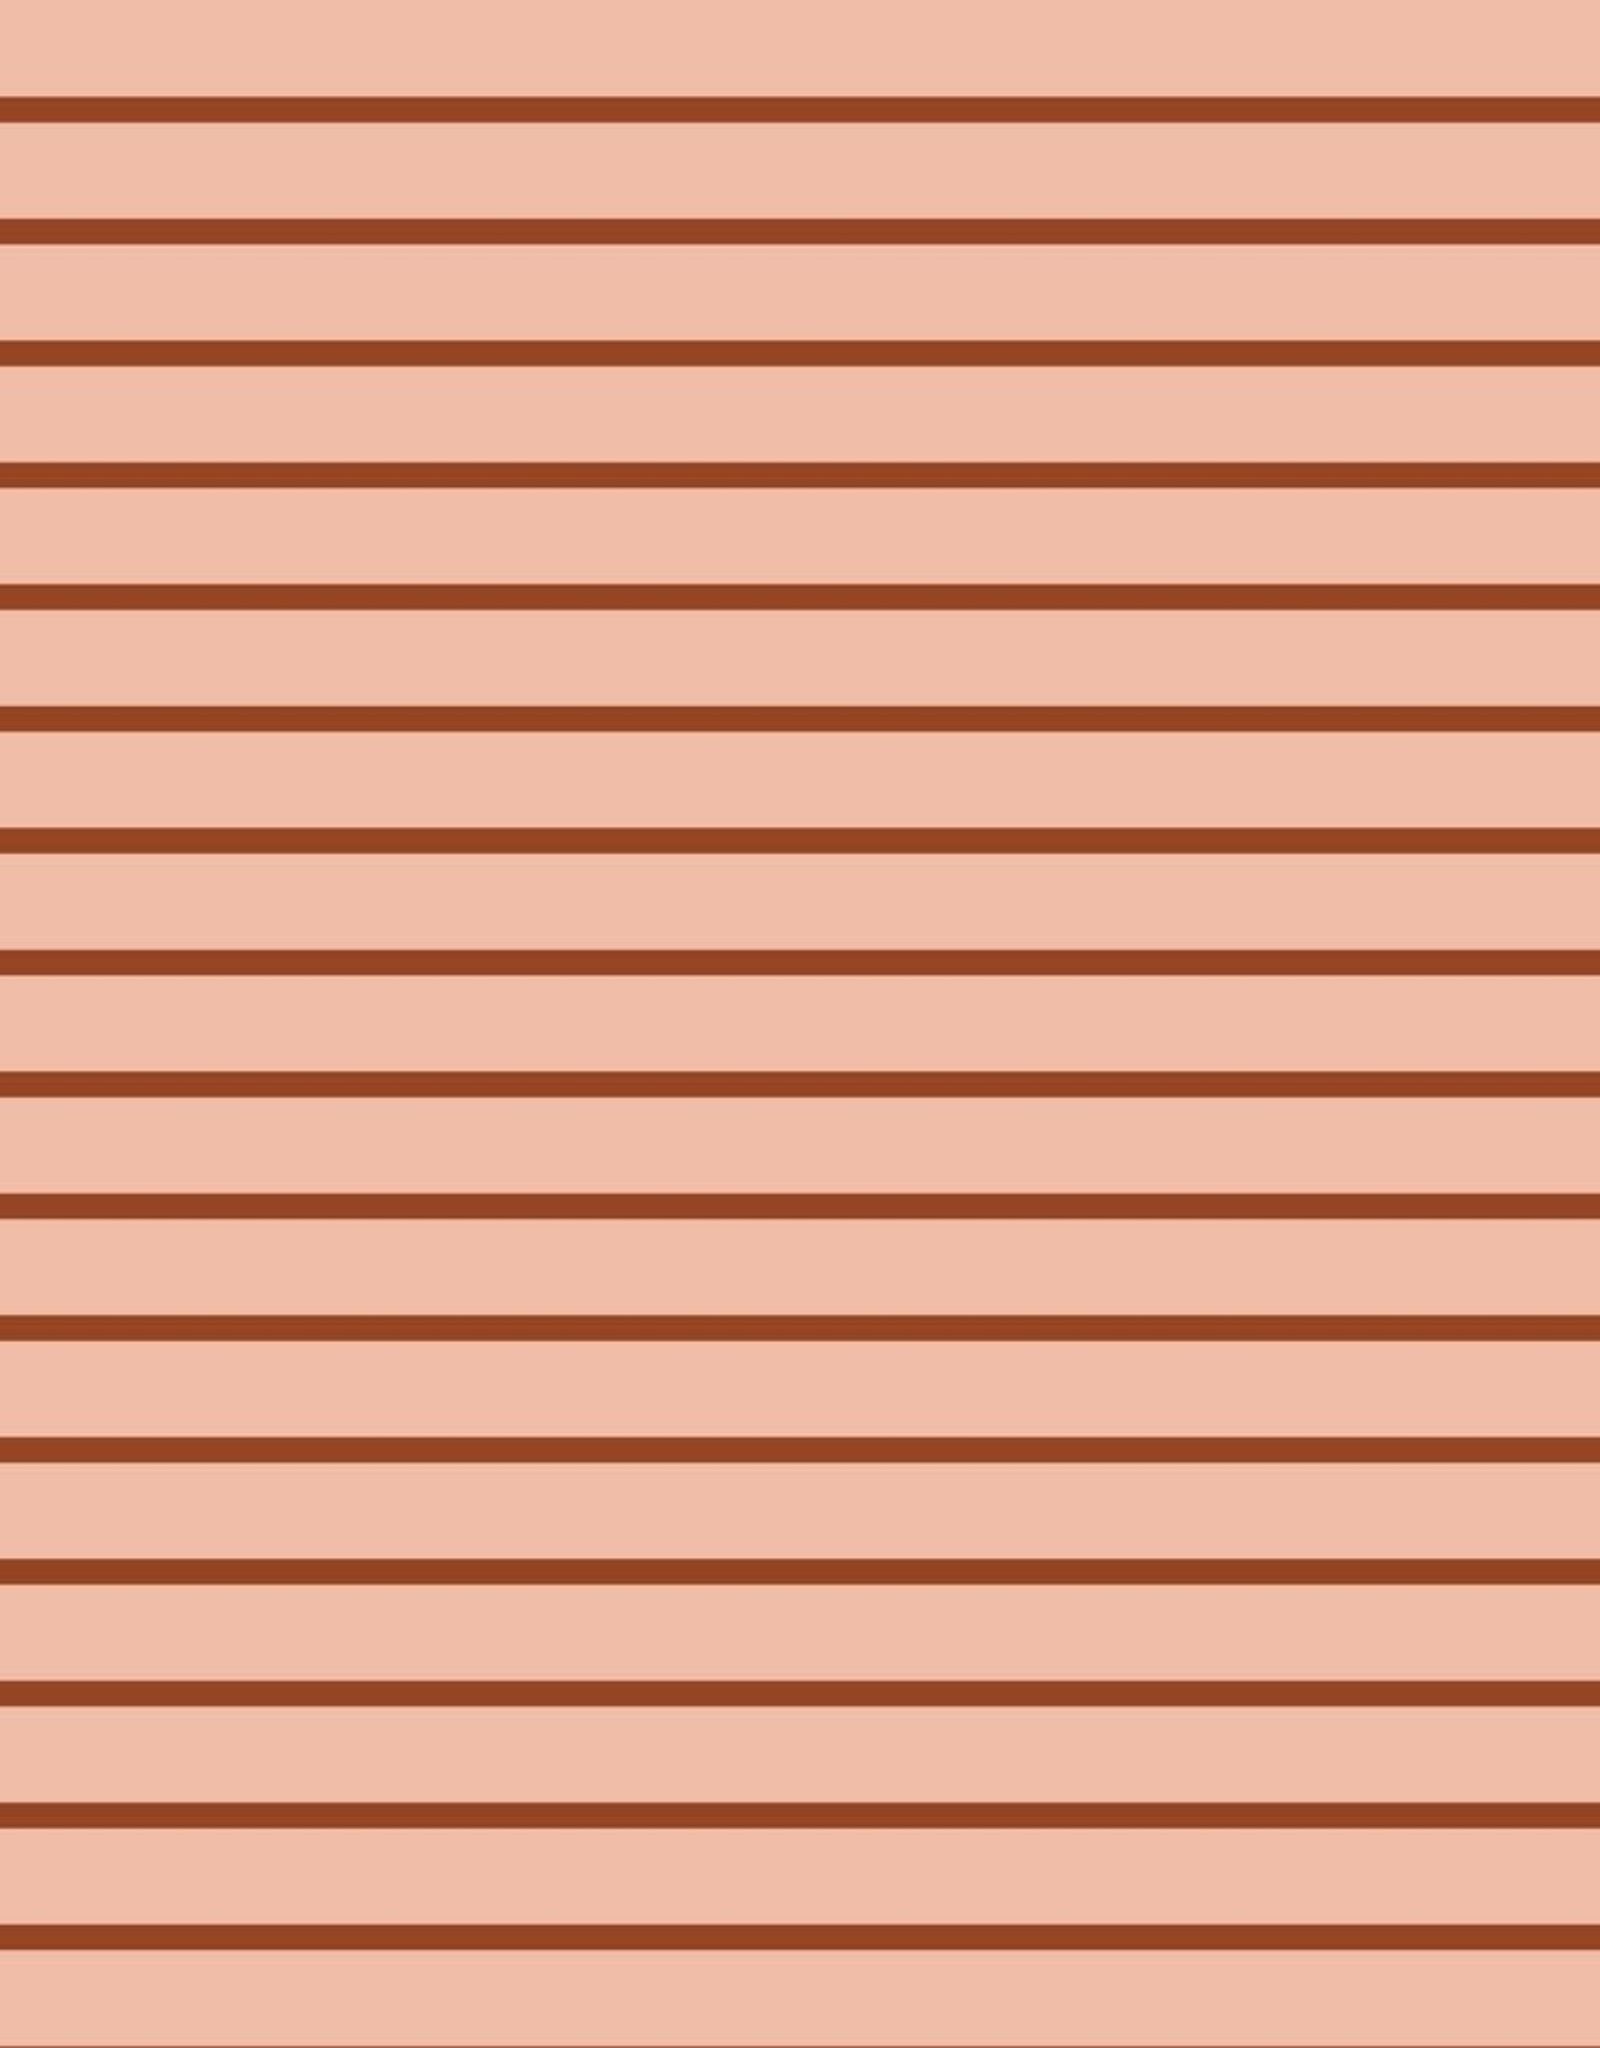 French Terry Striped - Powder/Brique